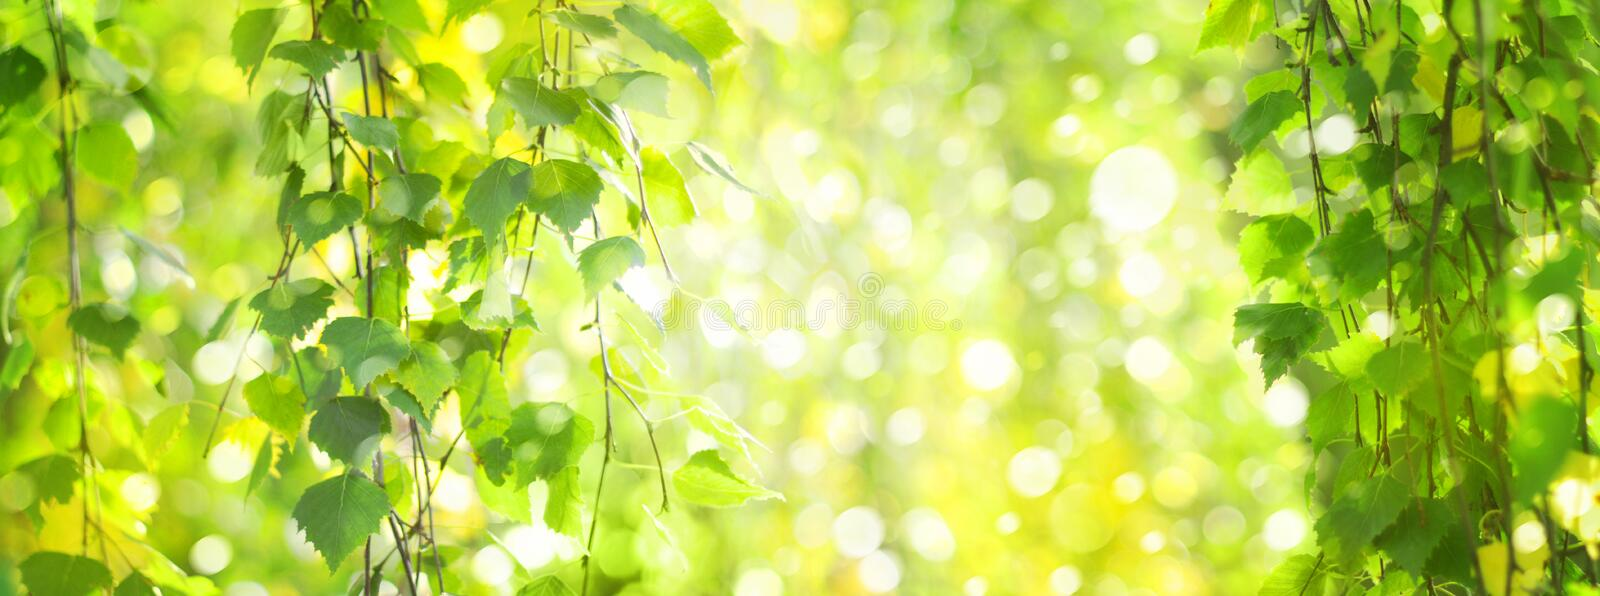 Green birch leaves branches bokeh background. royalty free stock images